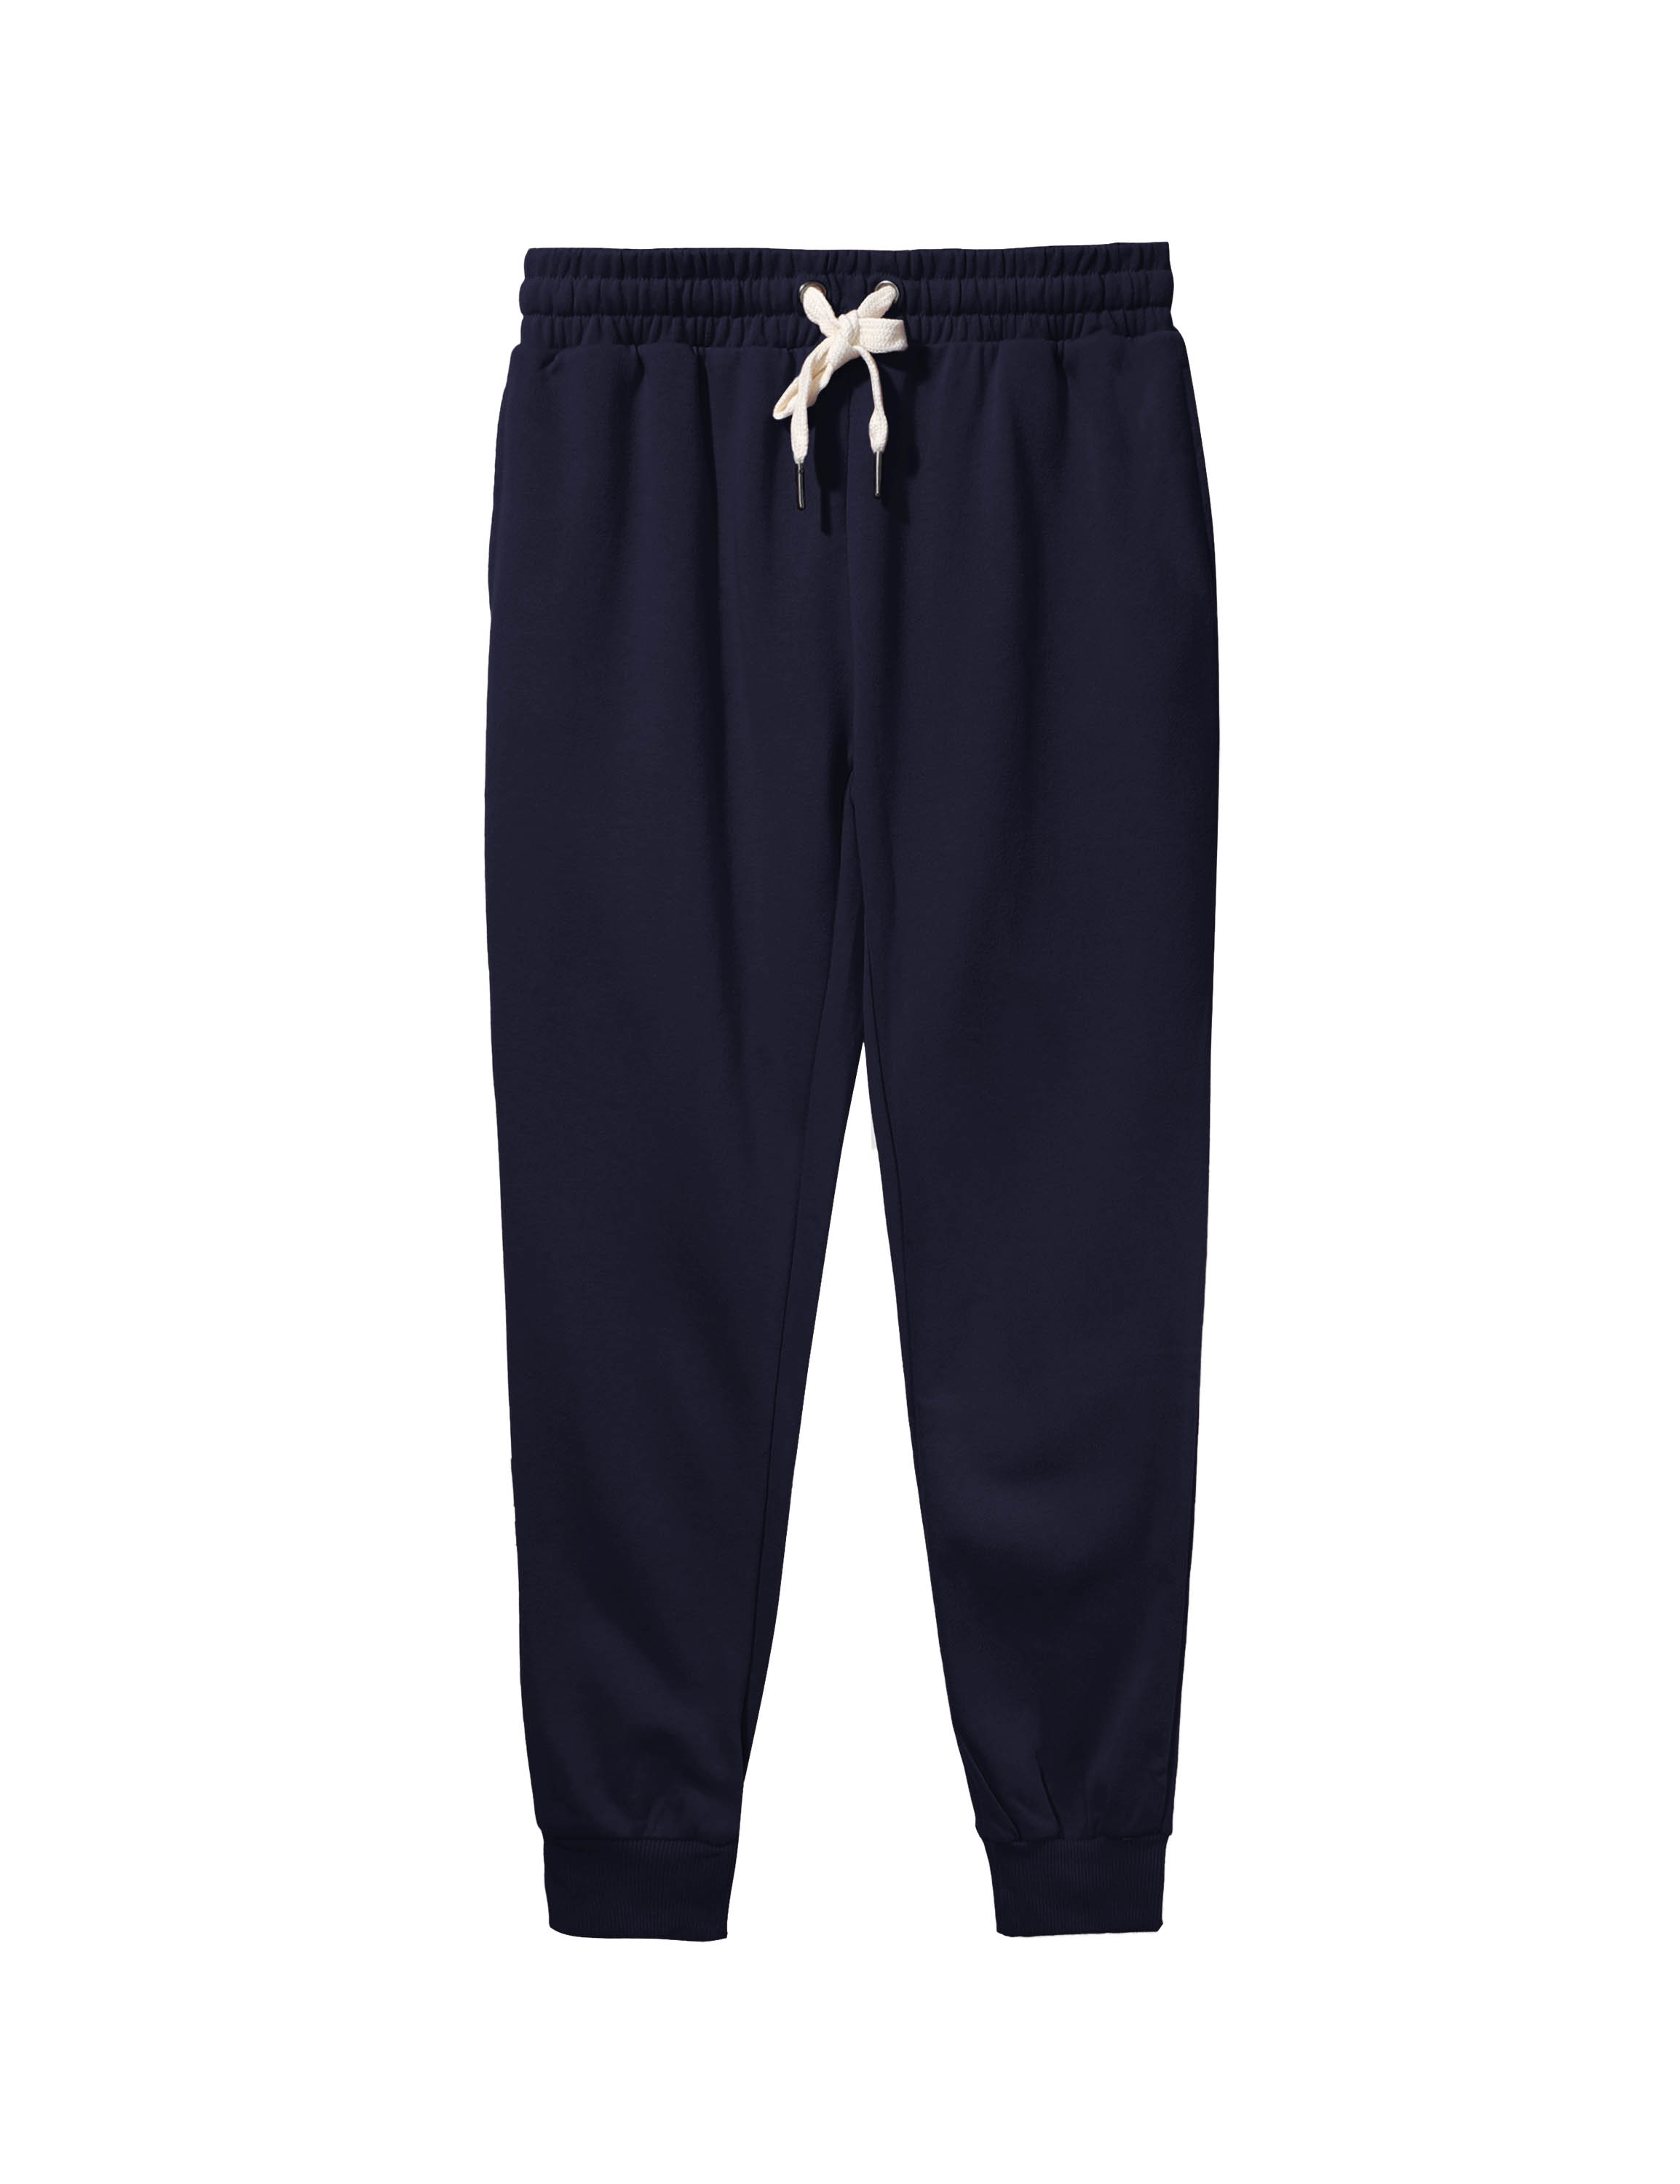 Womens French Terry Cropped Joggers with Pockets Cotton Fleece Active Sweatpants